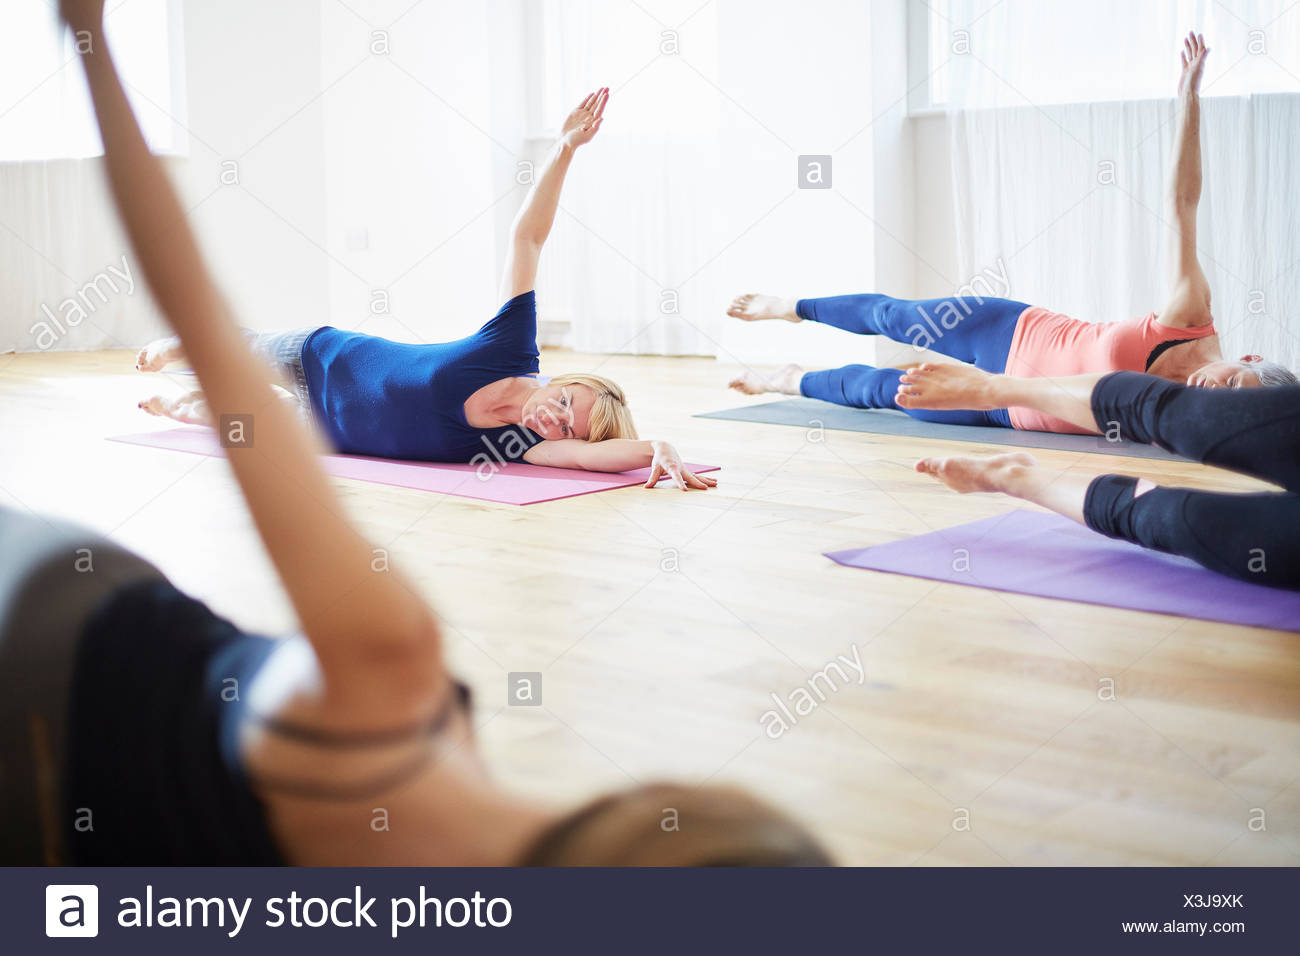 Four women lying on side with arms raised in pilates class - Stock Image